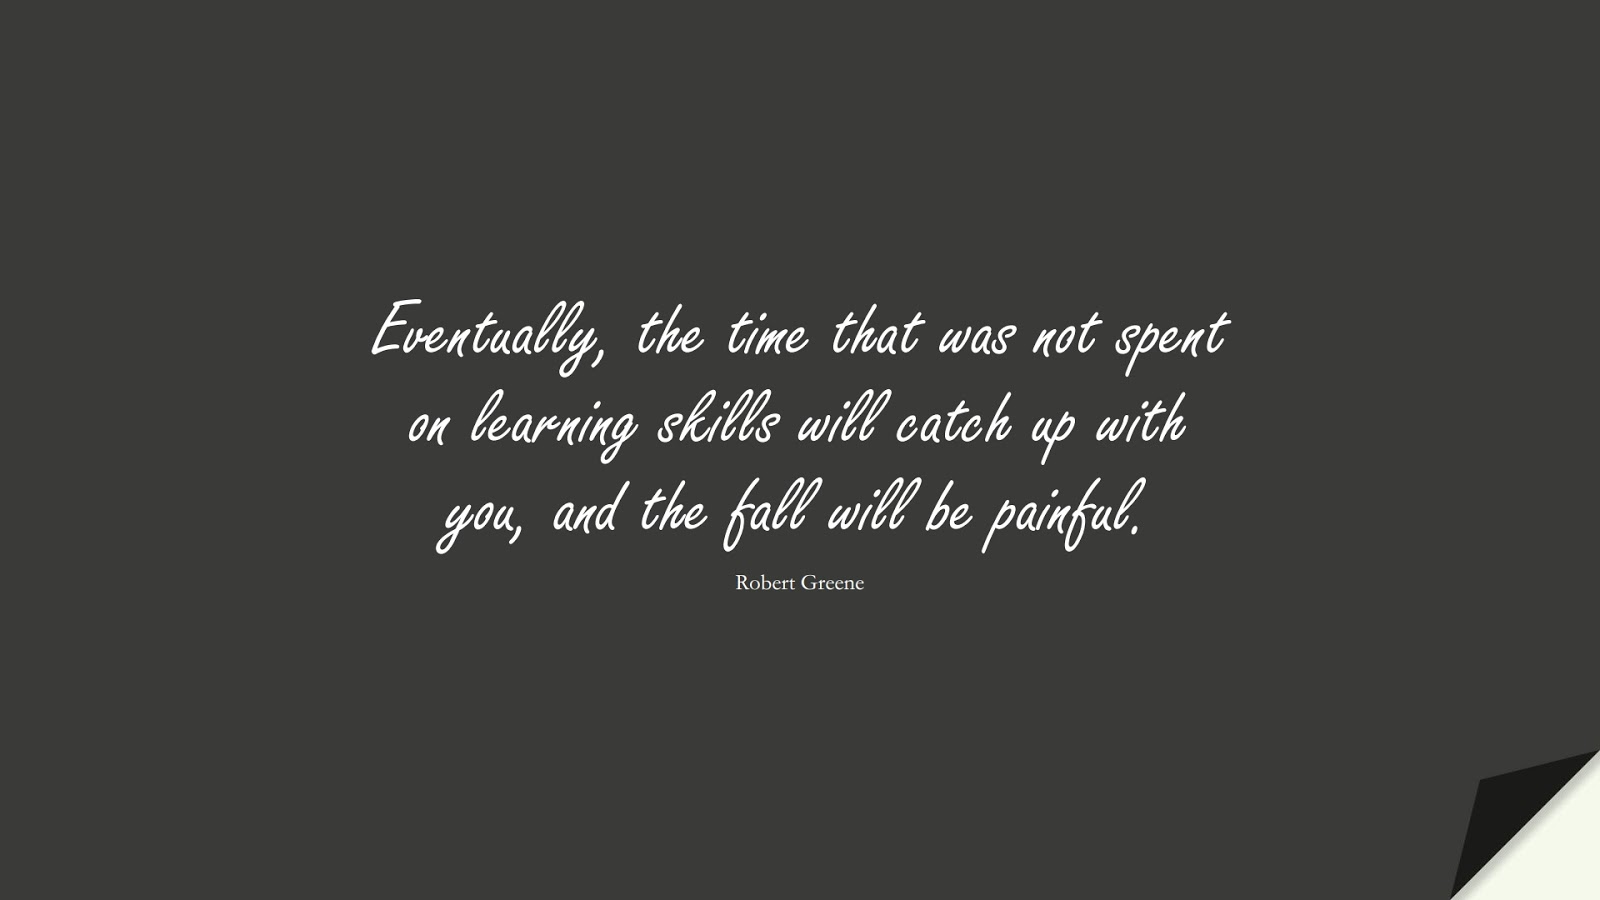 Eventually, the time that was not spent on learning skills will catch up with you, and the fall will be painful. (Robert Greene);  #StoicQuotes